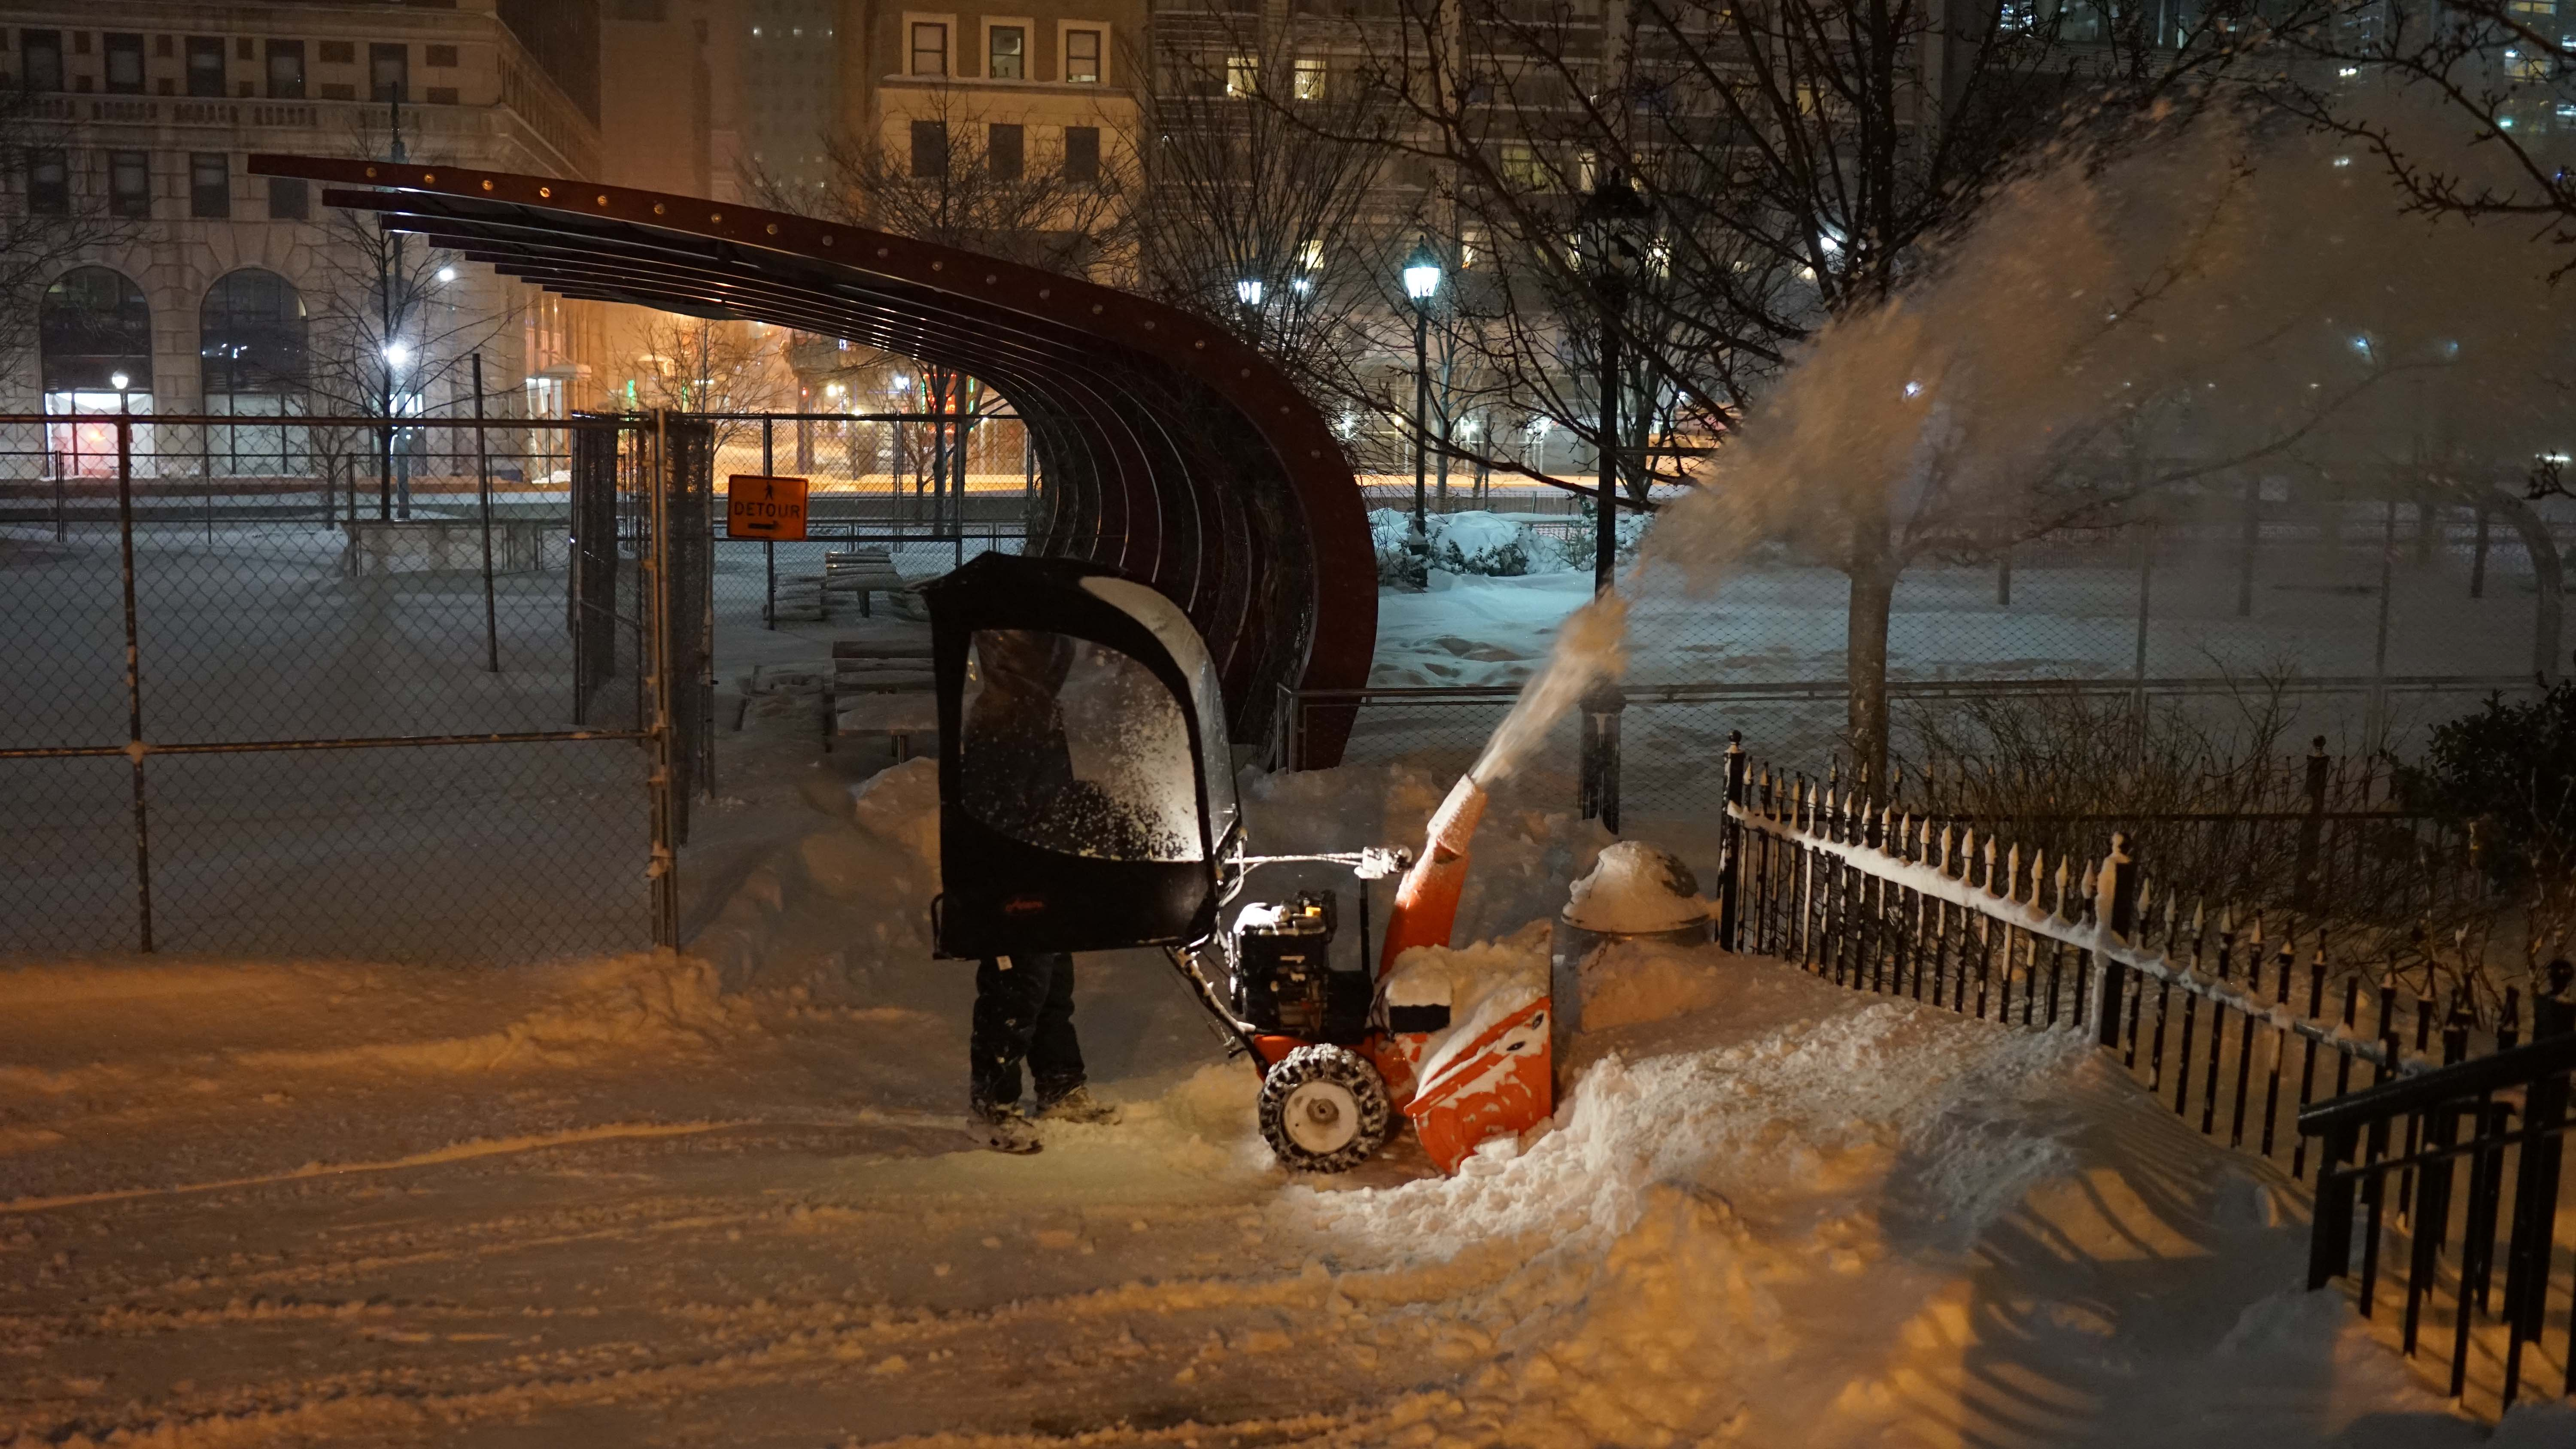 Parks guy w snowblower